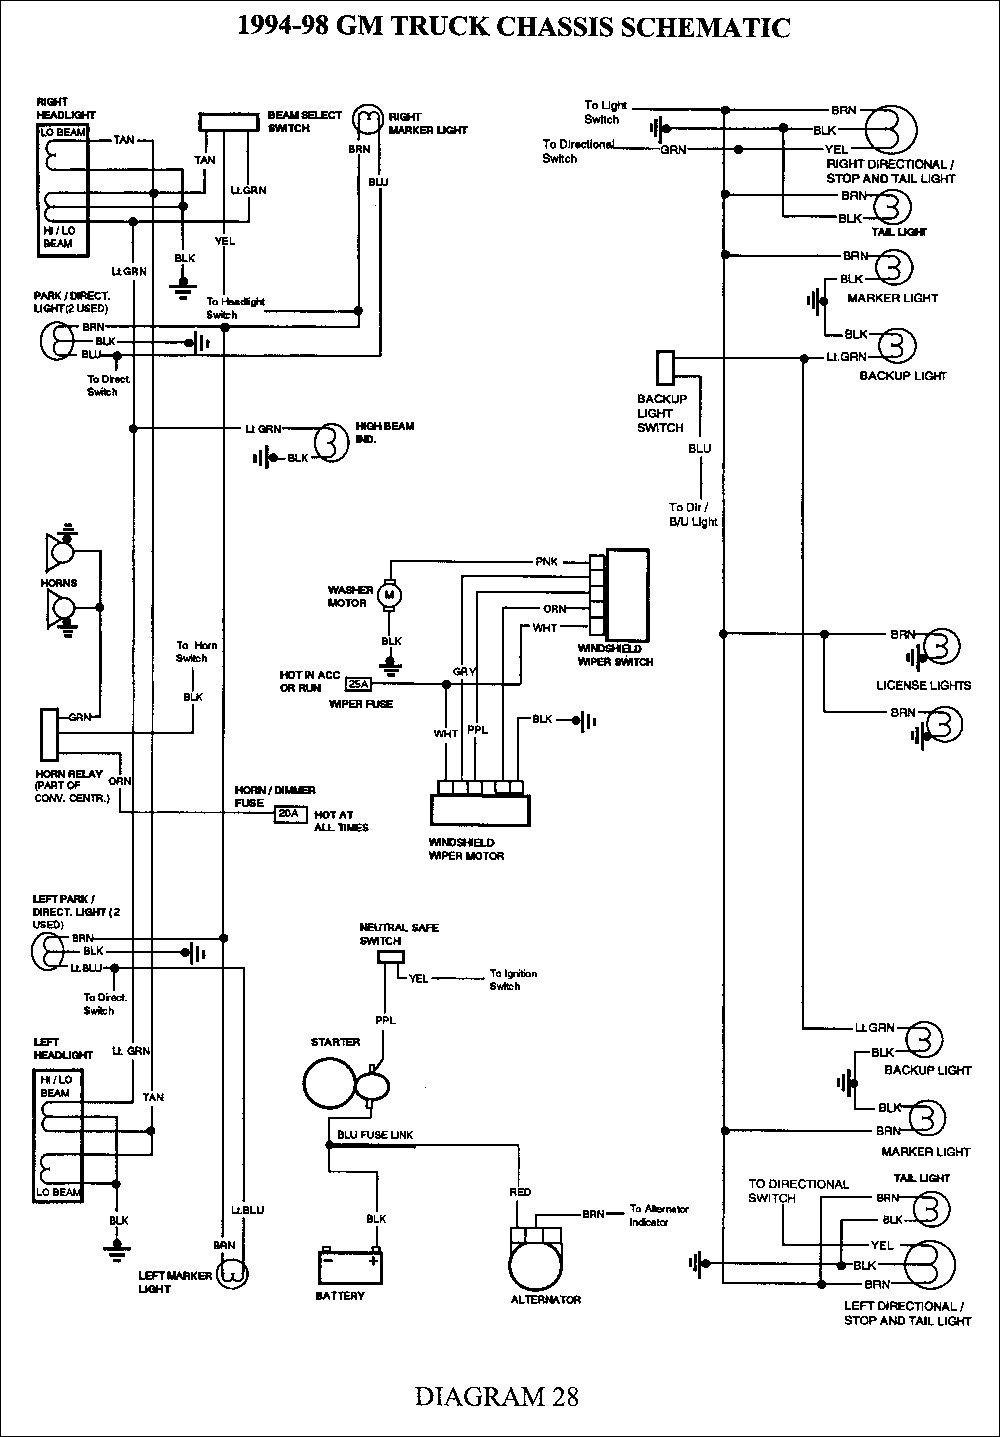 1995 S10 4x4 Wiring Diagram